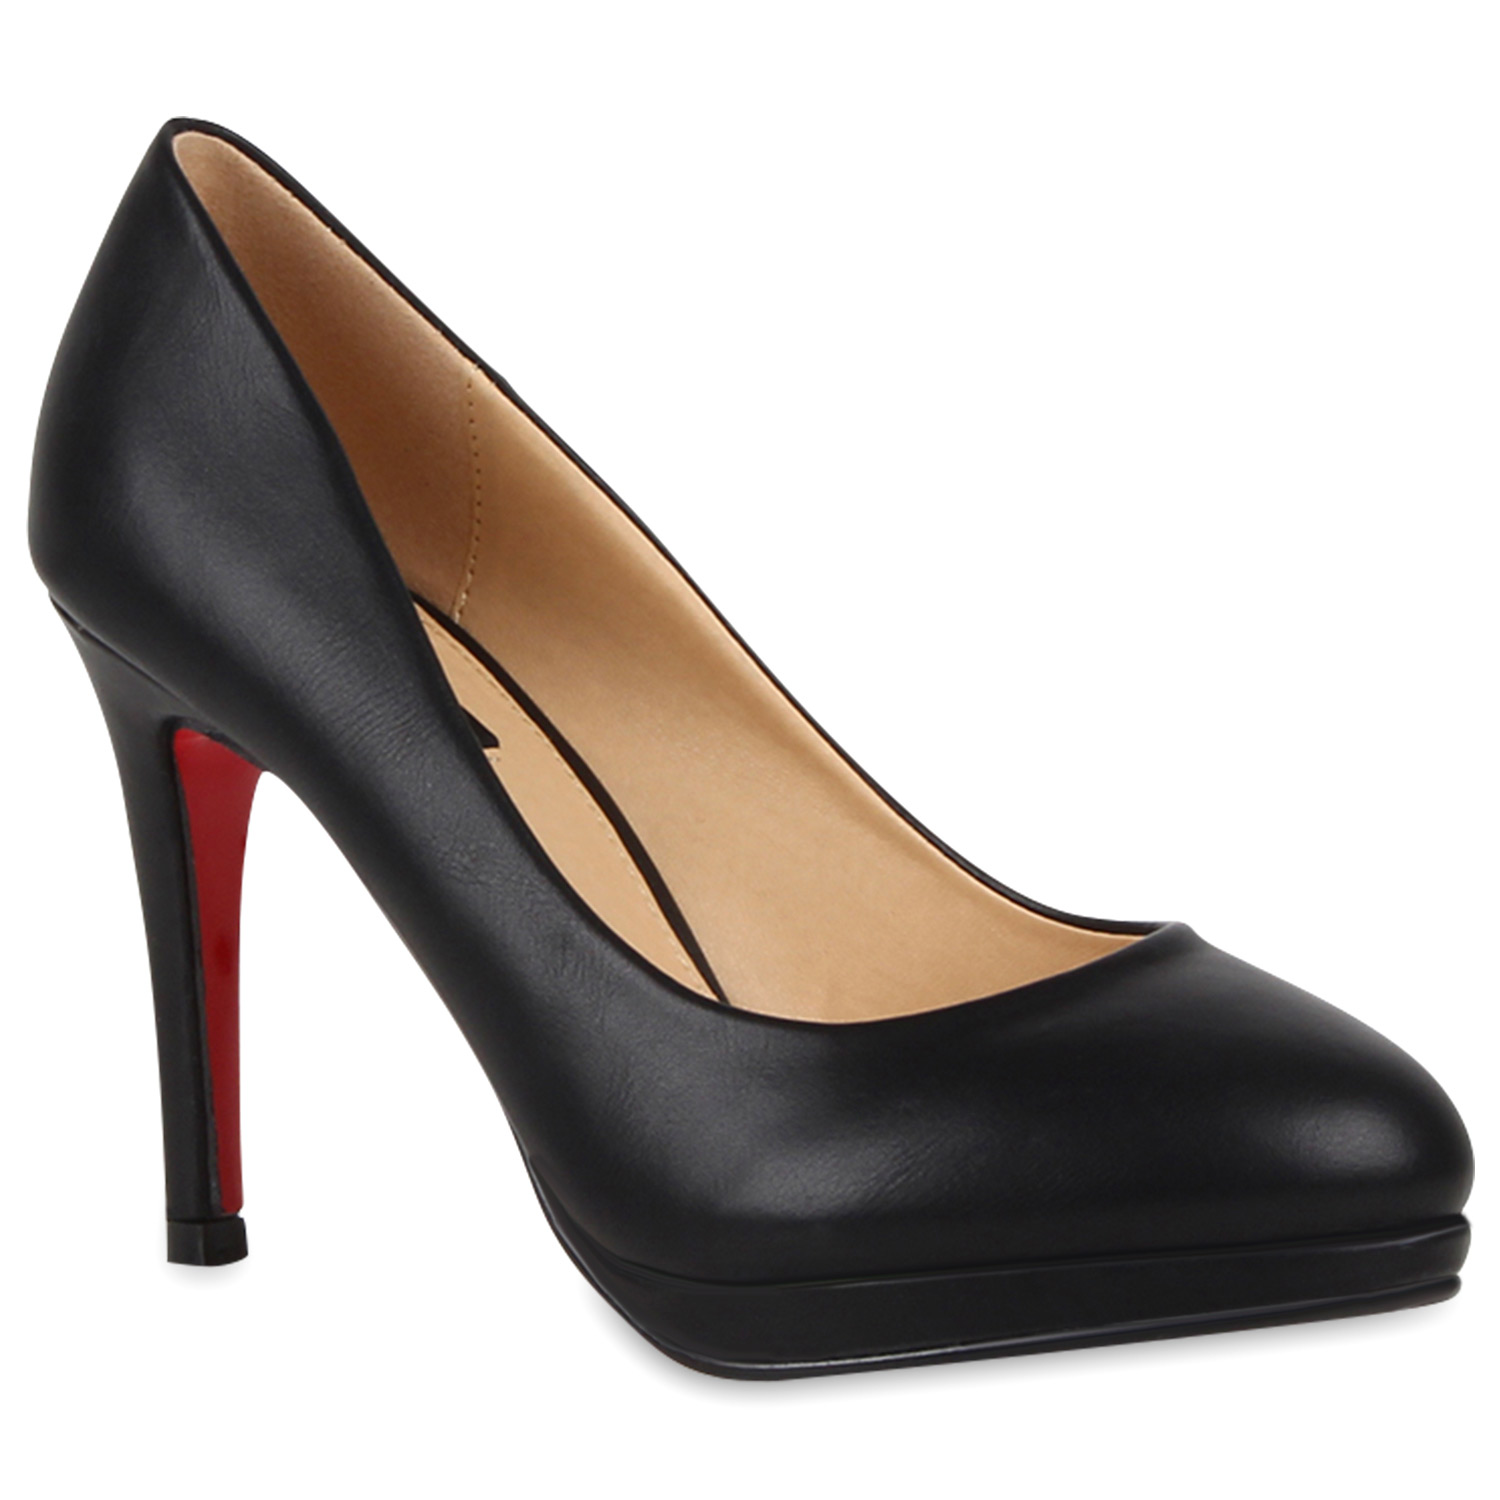 damen plateau pumps high heels lederoptik stiletto schuhe 76586 ebay. Black Bedroom Furniture Sets. Home Design Ideas